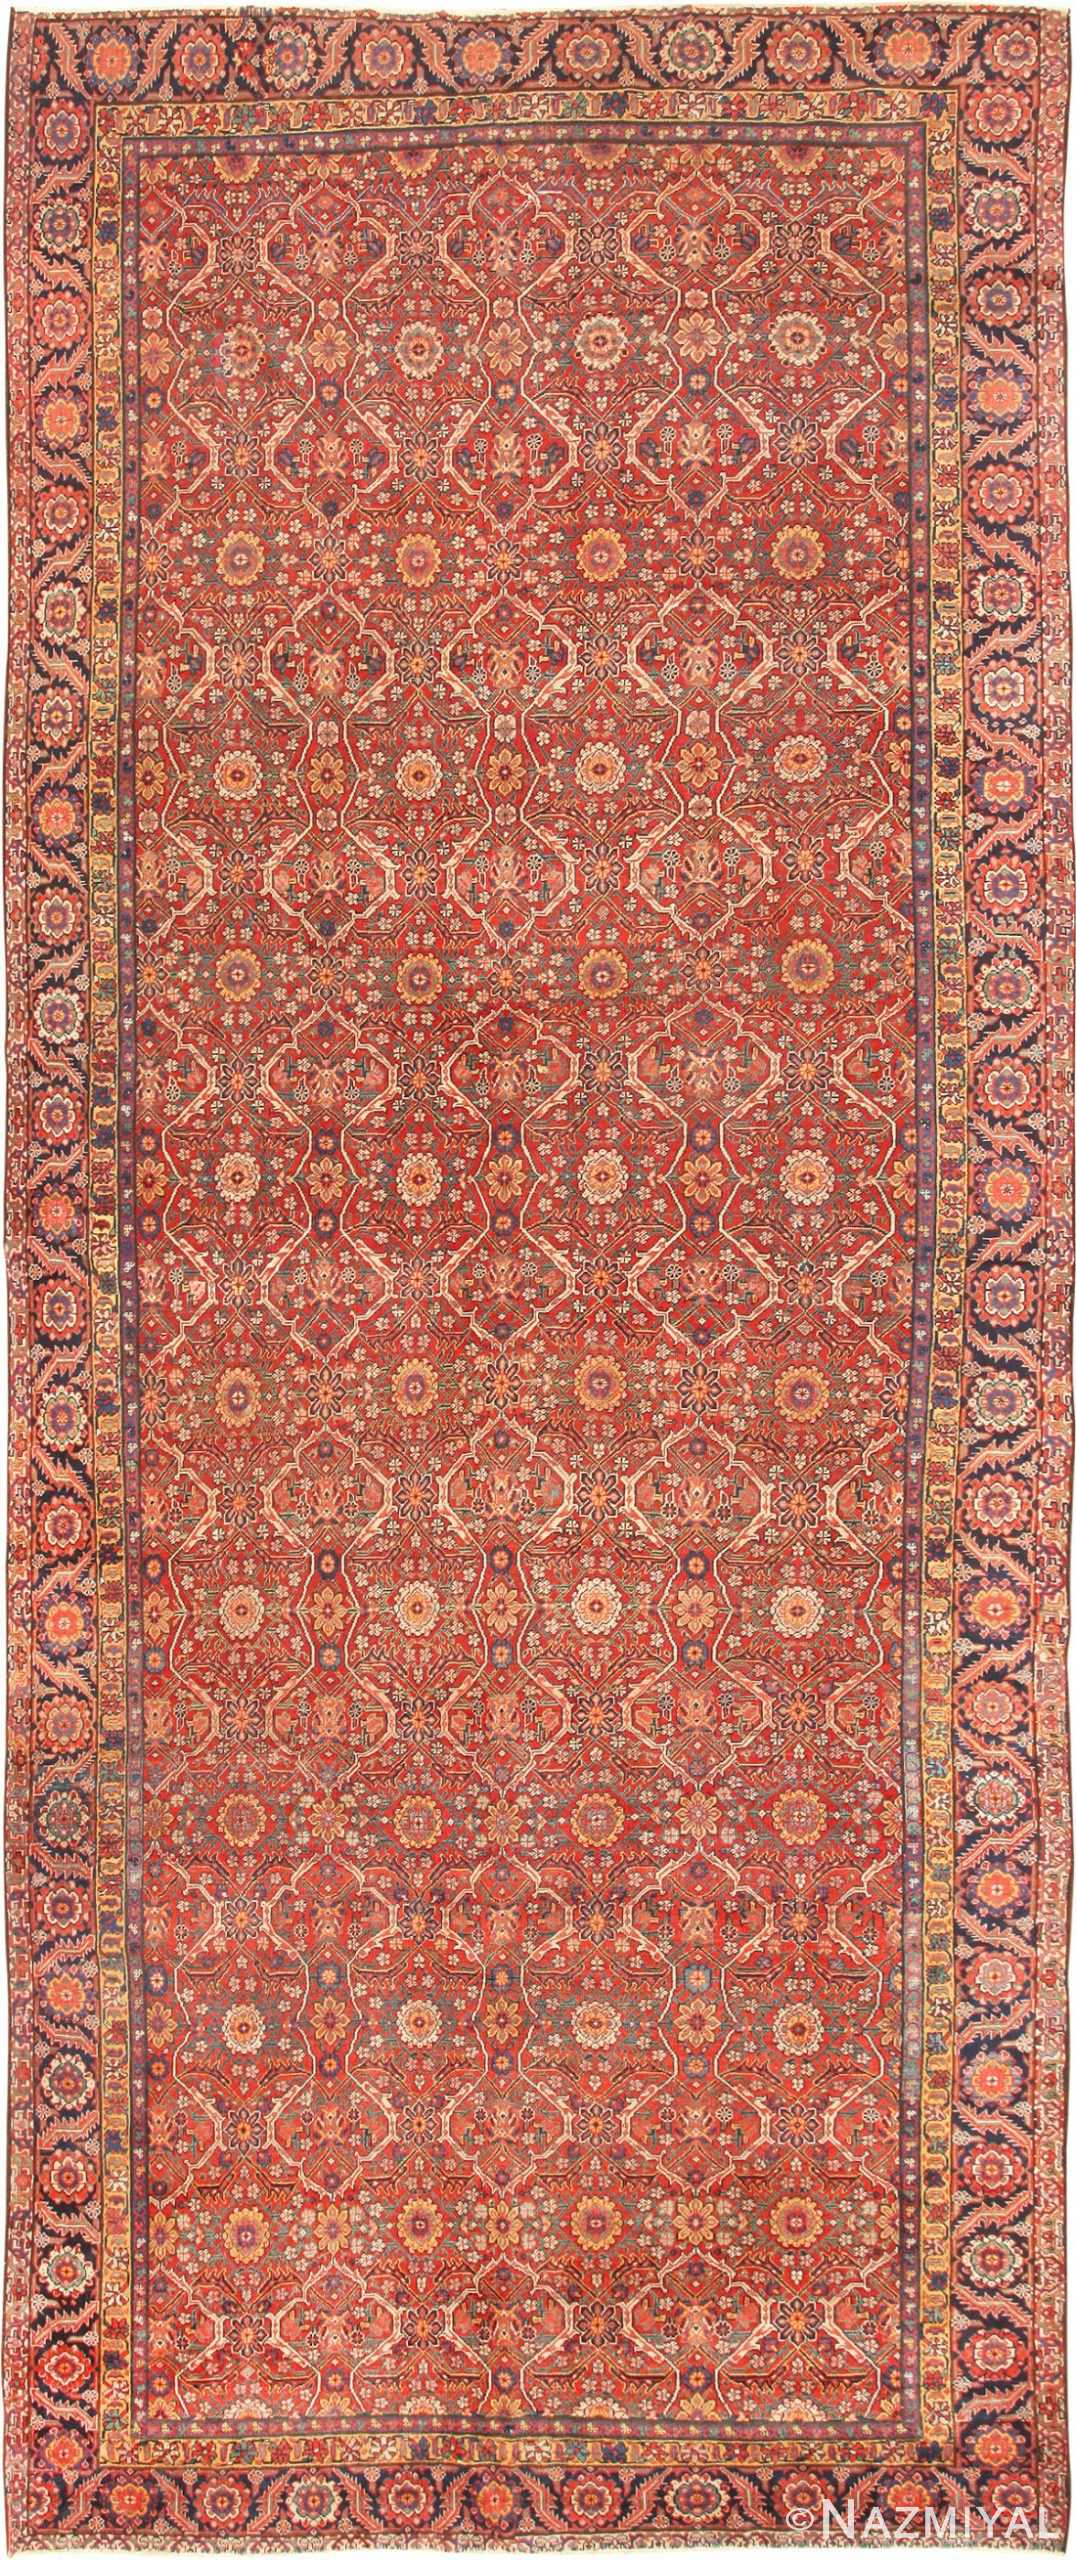 Antique Persian Farahan Carpet 47201 Nazmiyal